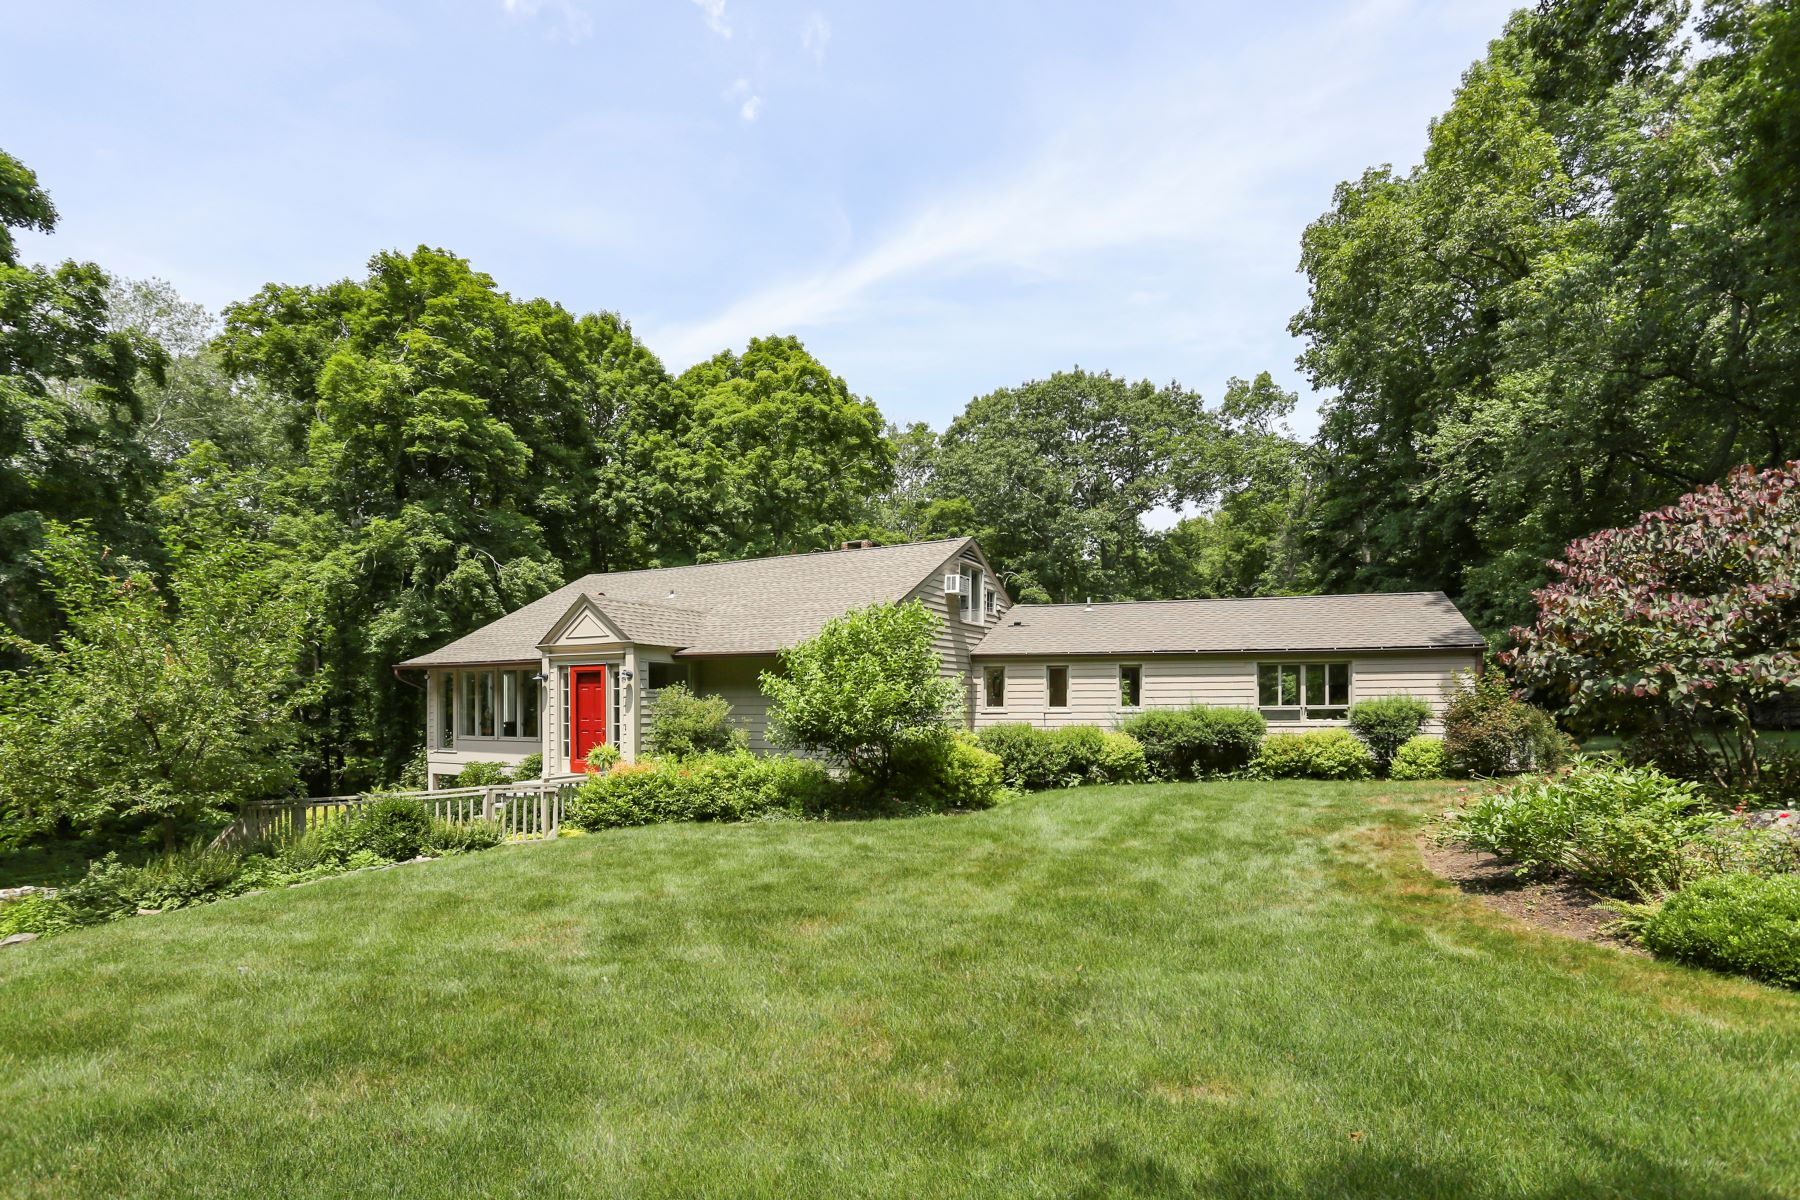 Single Family Homes for Active at Enjoy This Charming Ranch Style Home 86 Godfrey Road West Weston, Connecticut 06883 United States